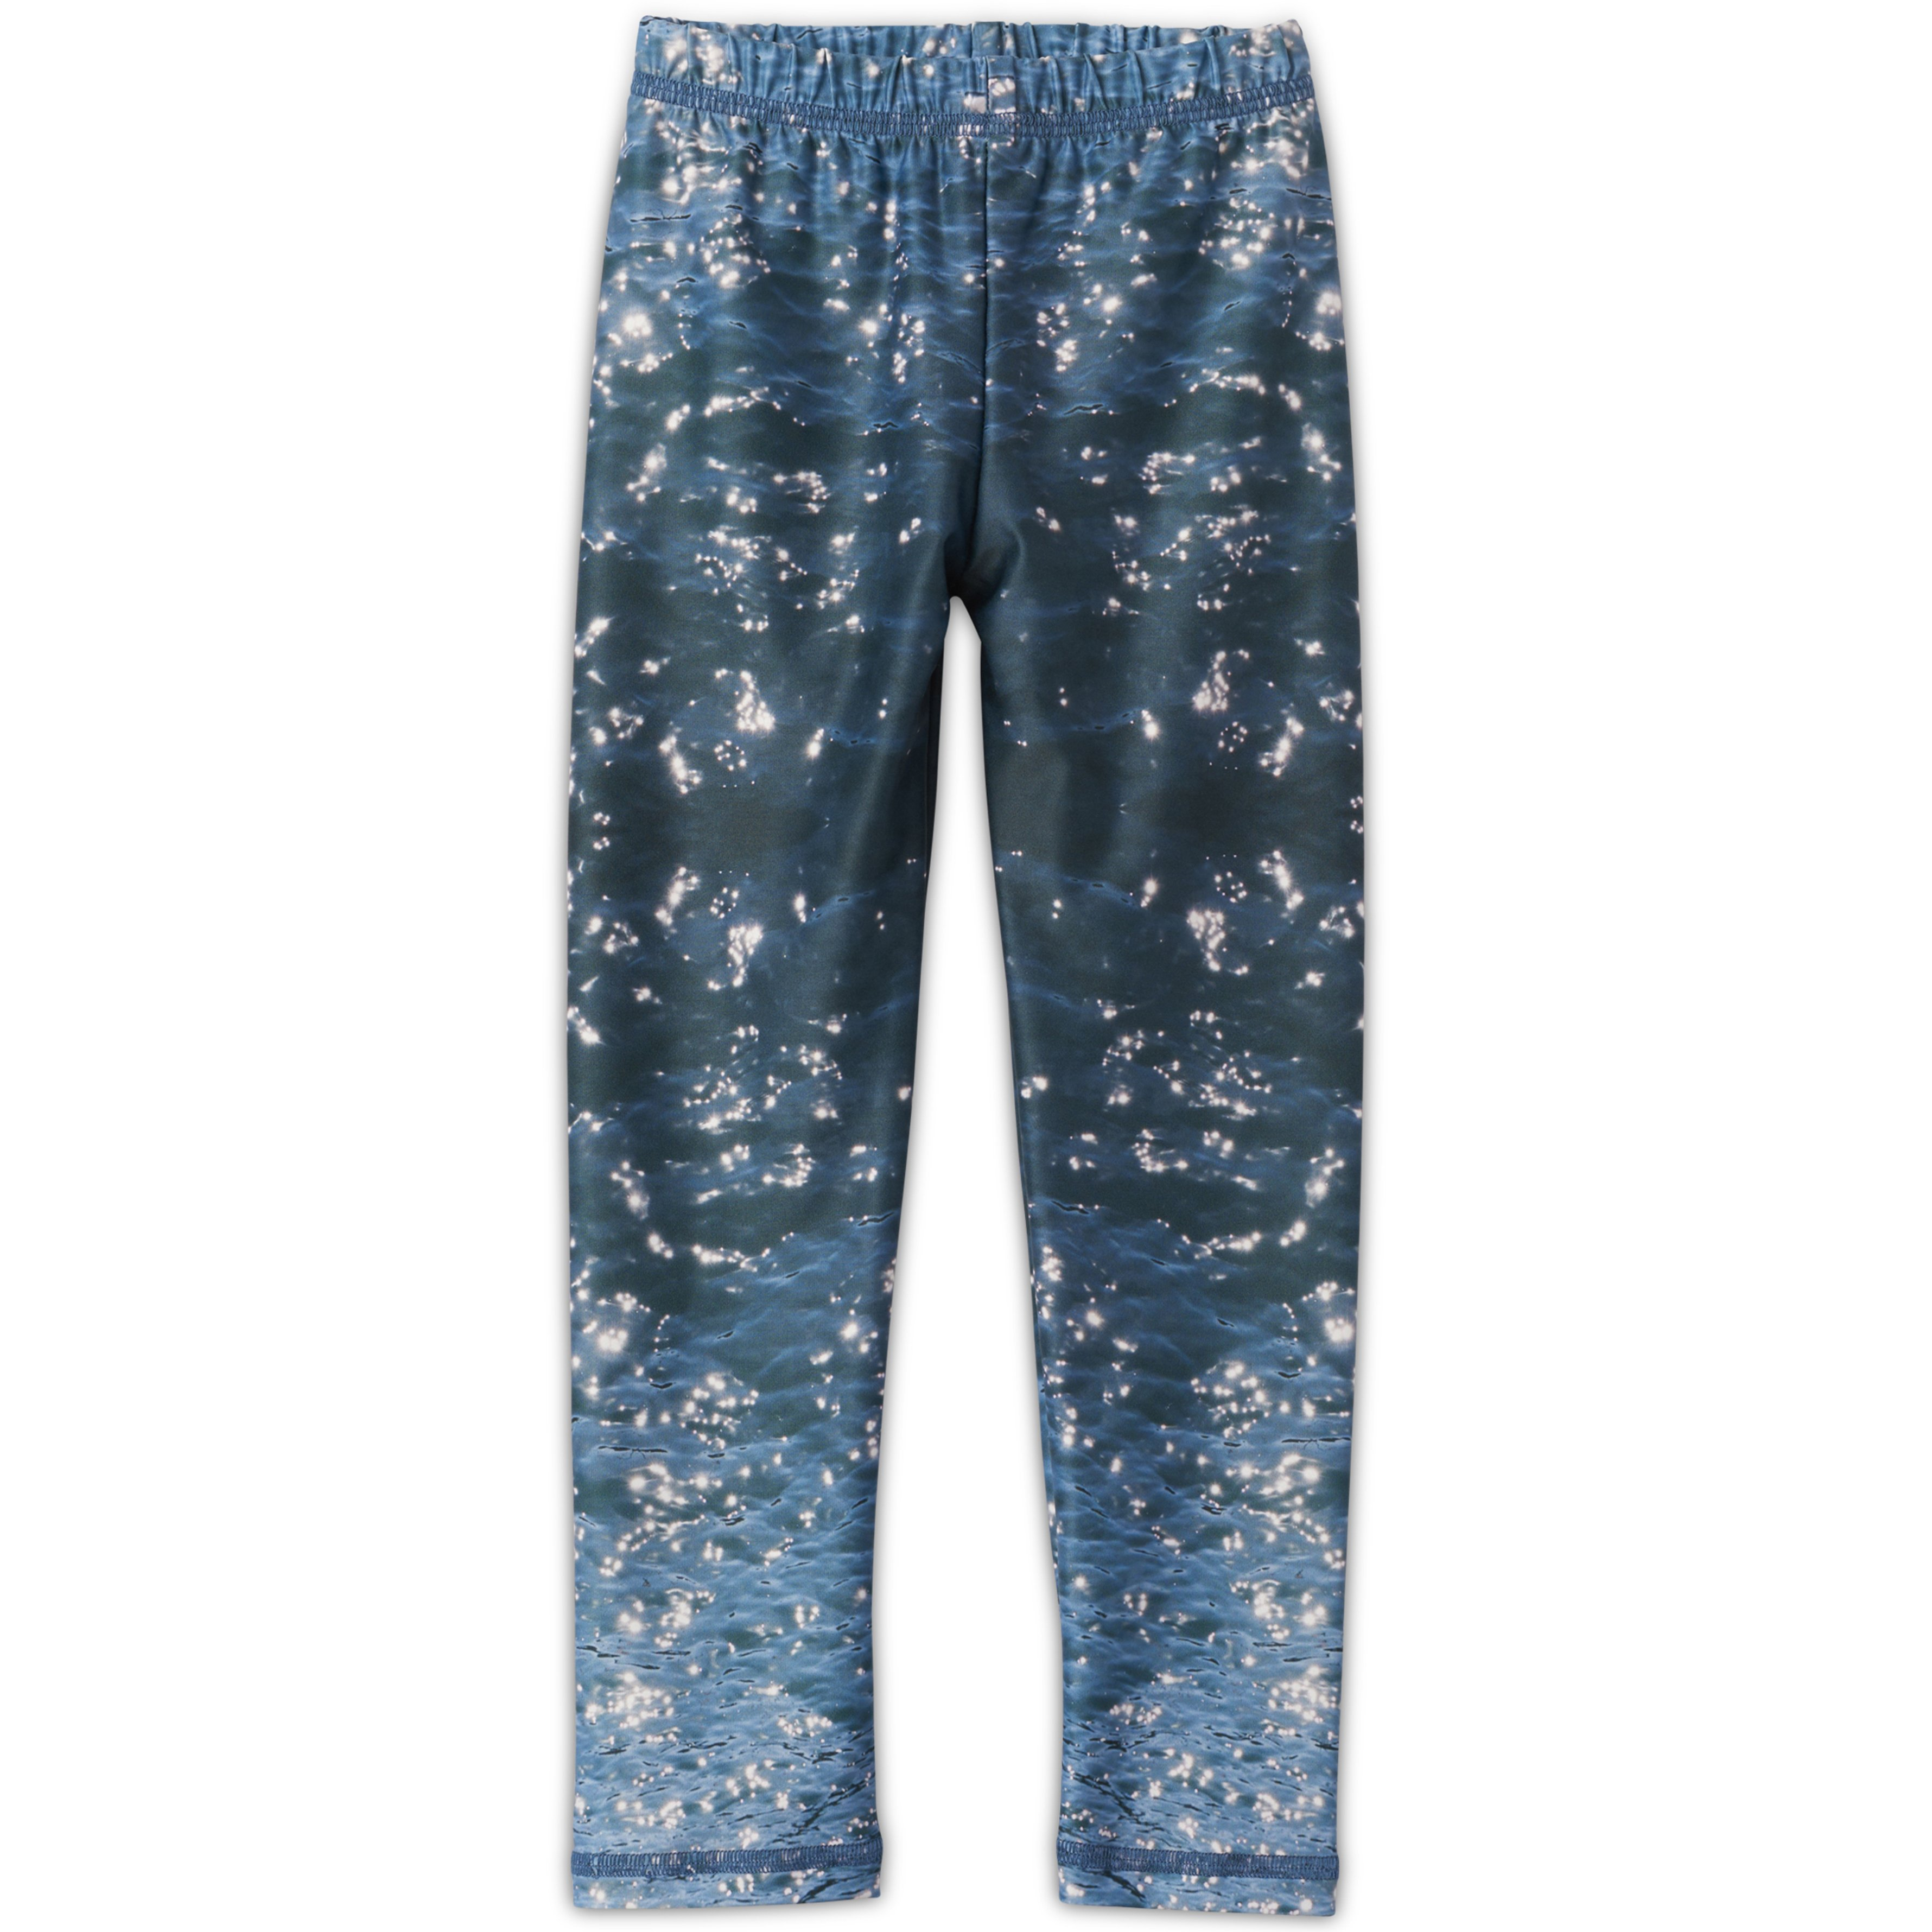 Ocean Photo Leggings Kids Sunpoplife